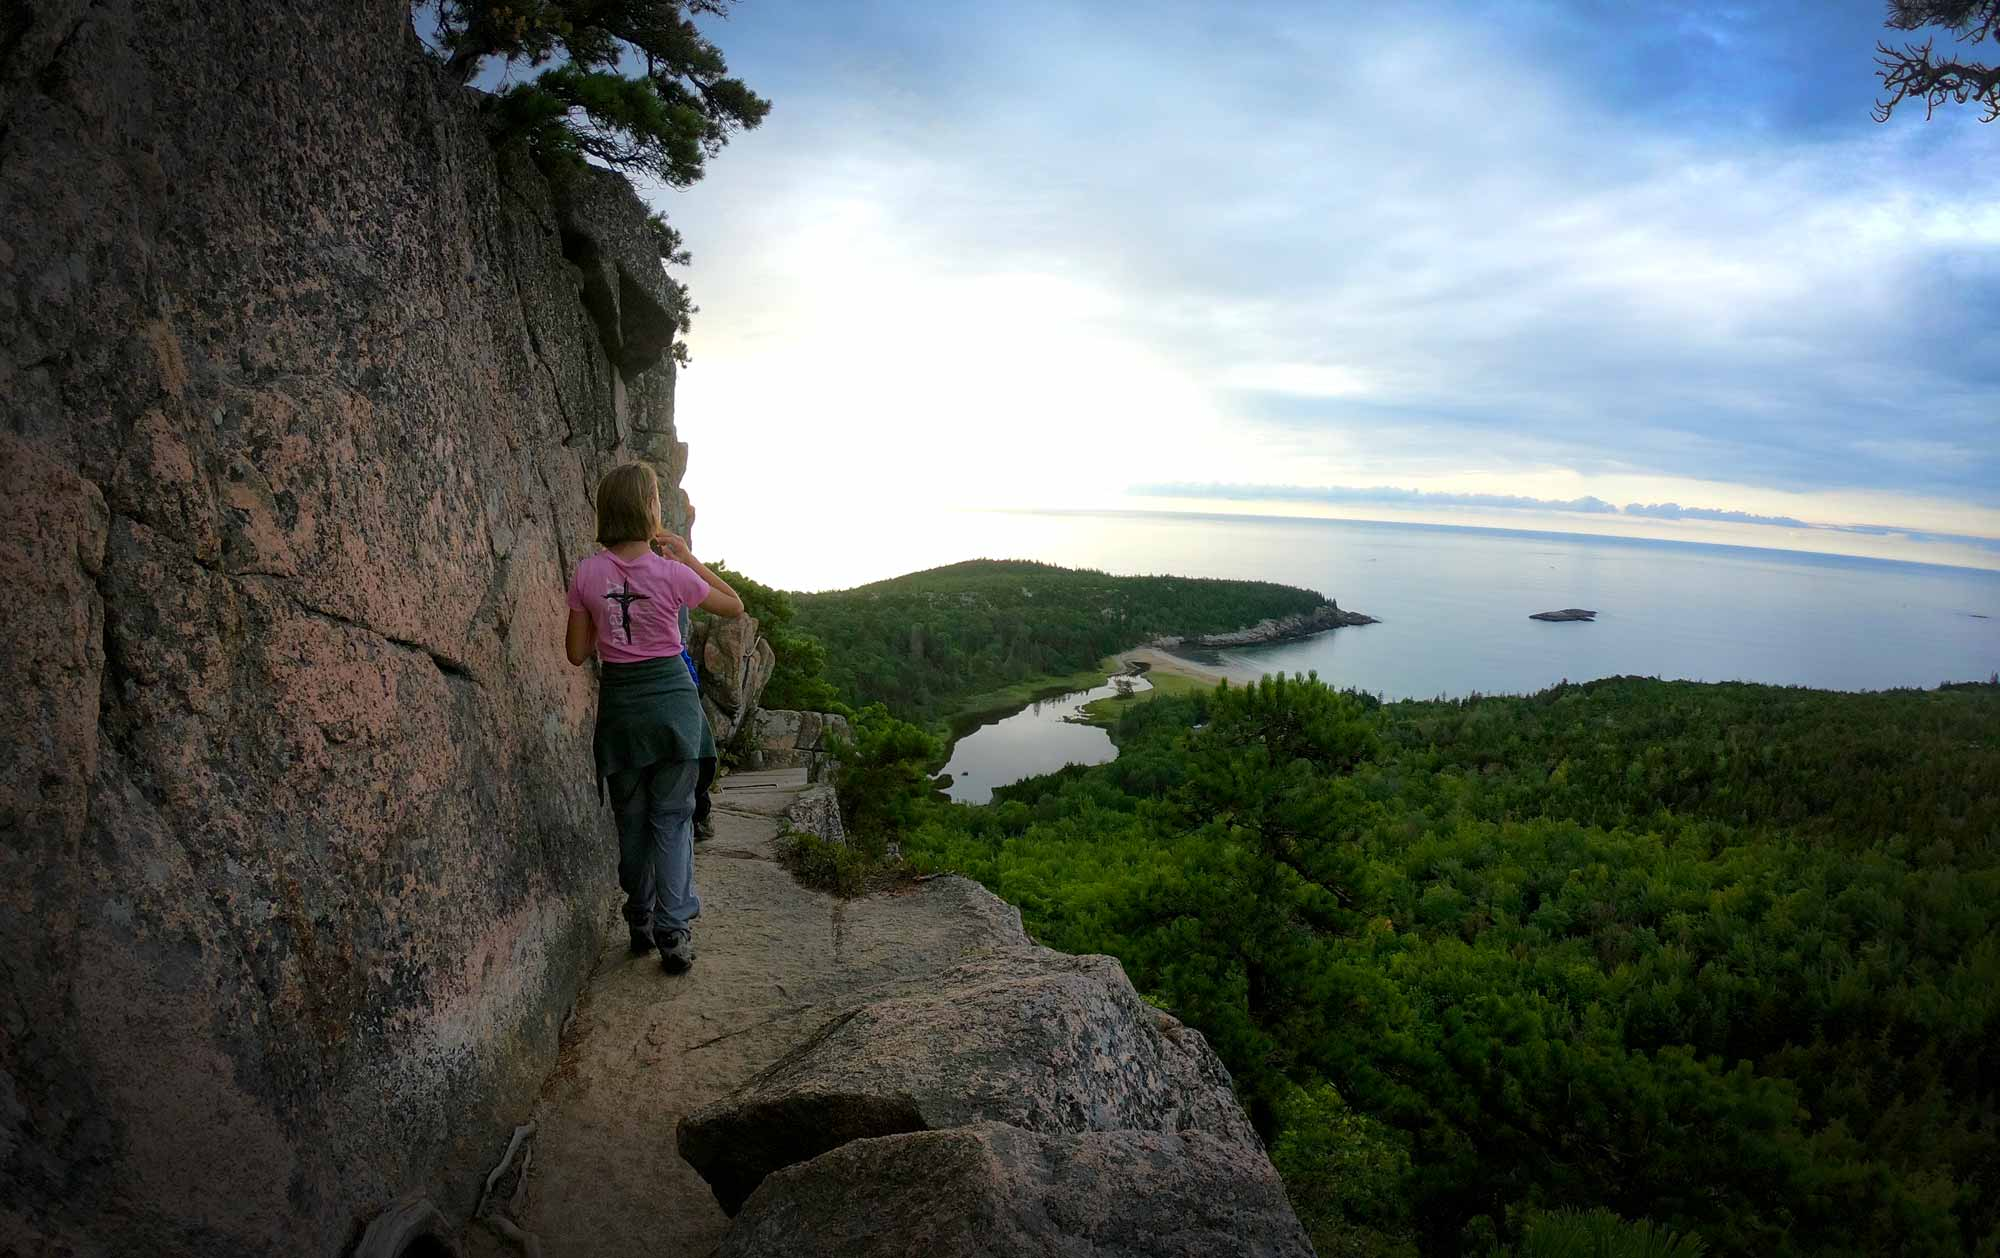 Teen walking at cliff's edge on Beehive Trail, Acadia National Park, Maine